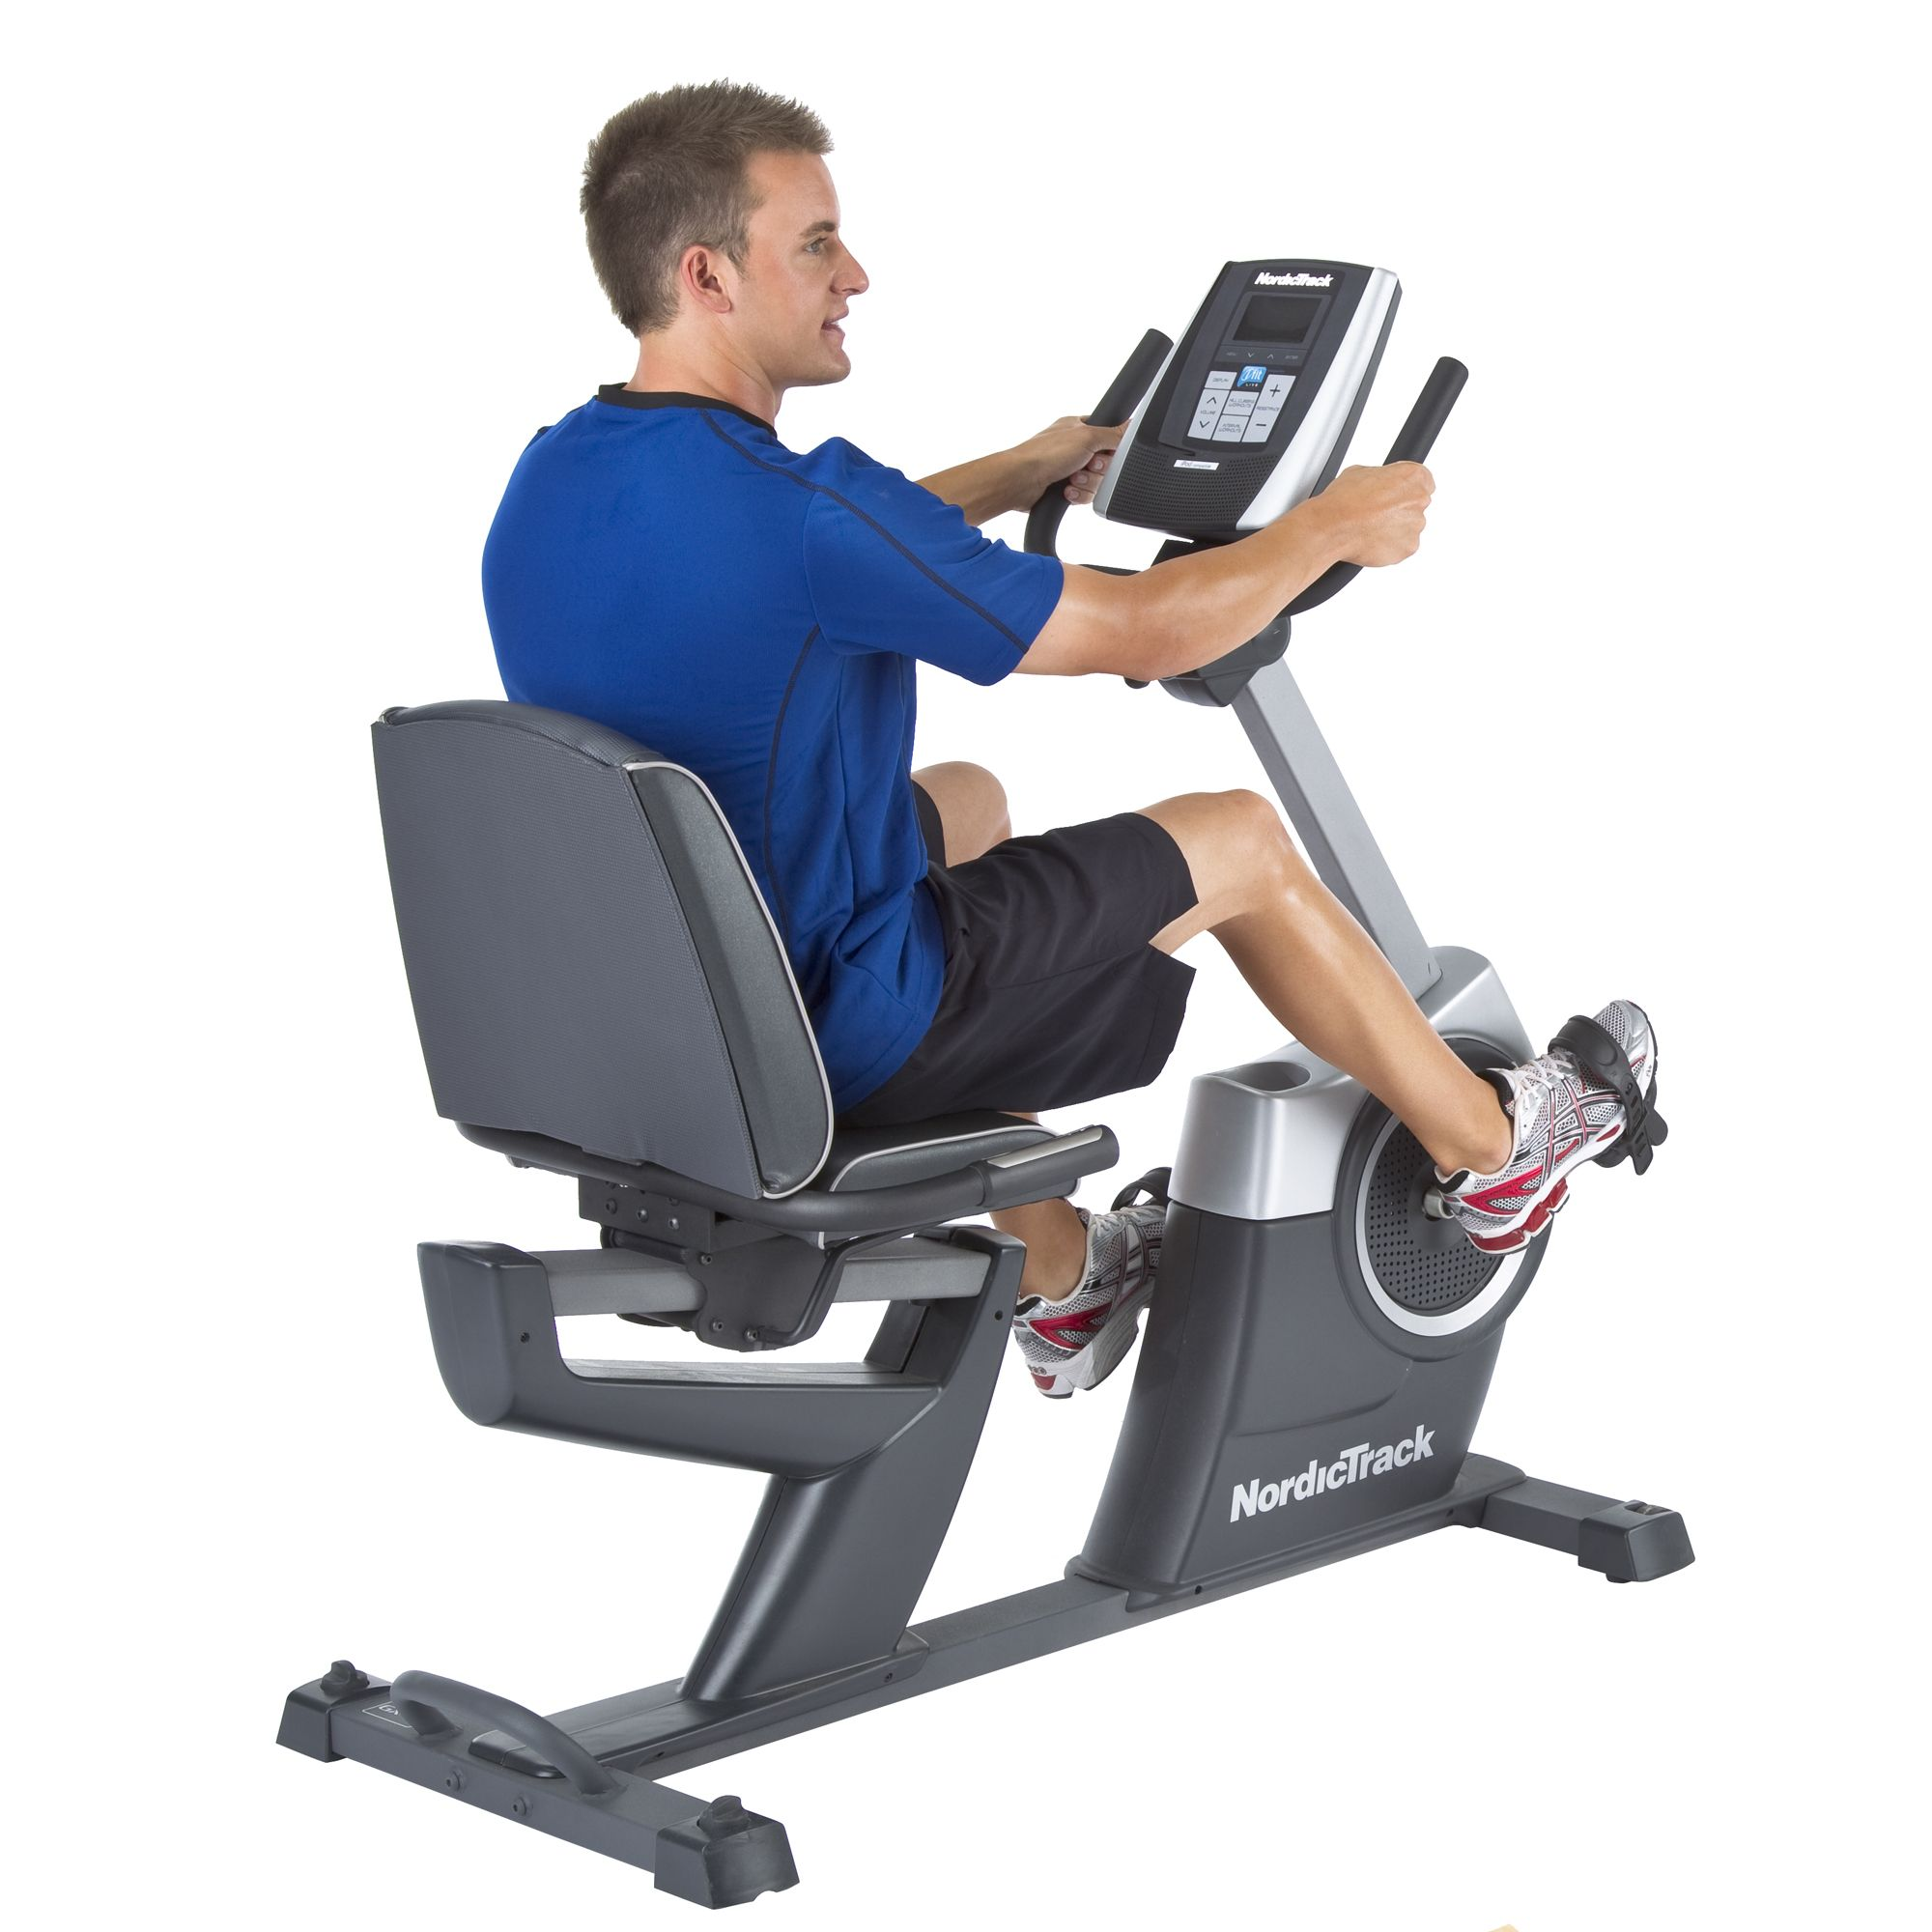 NordicTrack GX4.0 Recumbent Exercise Cycle